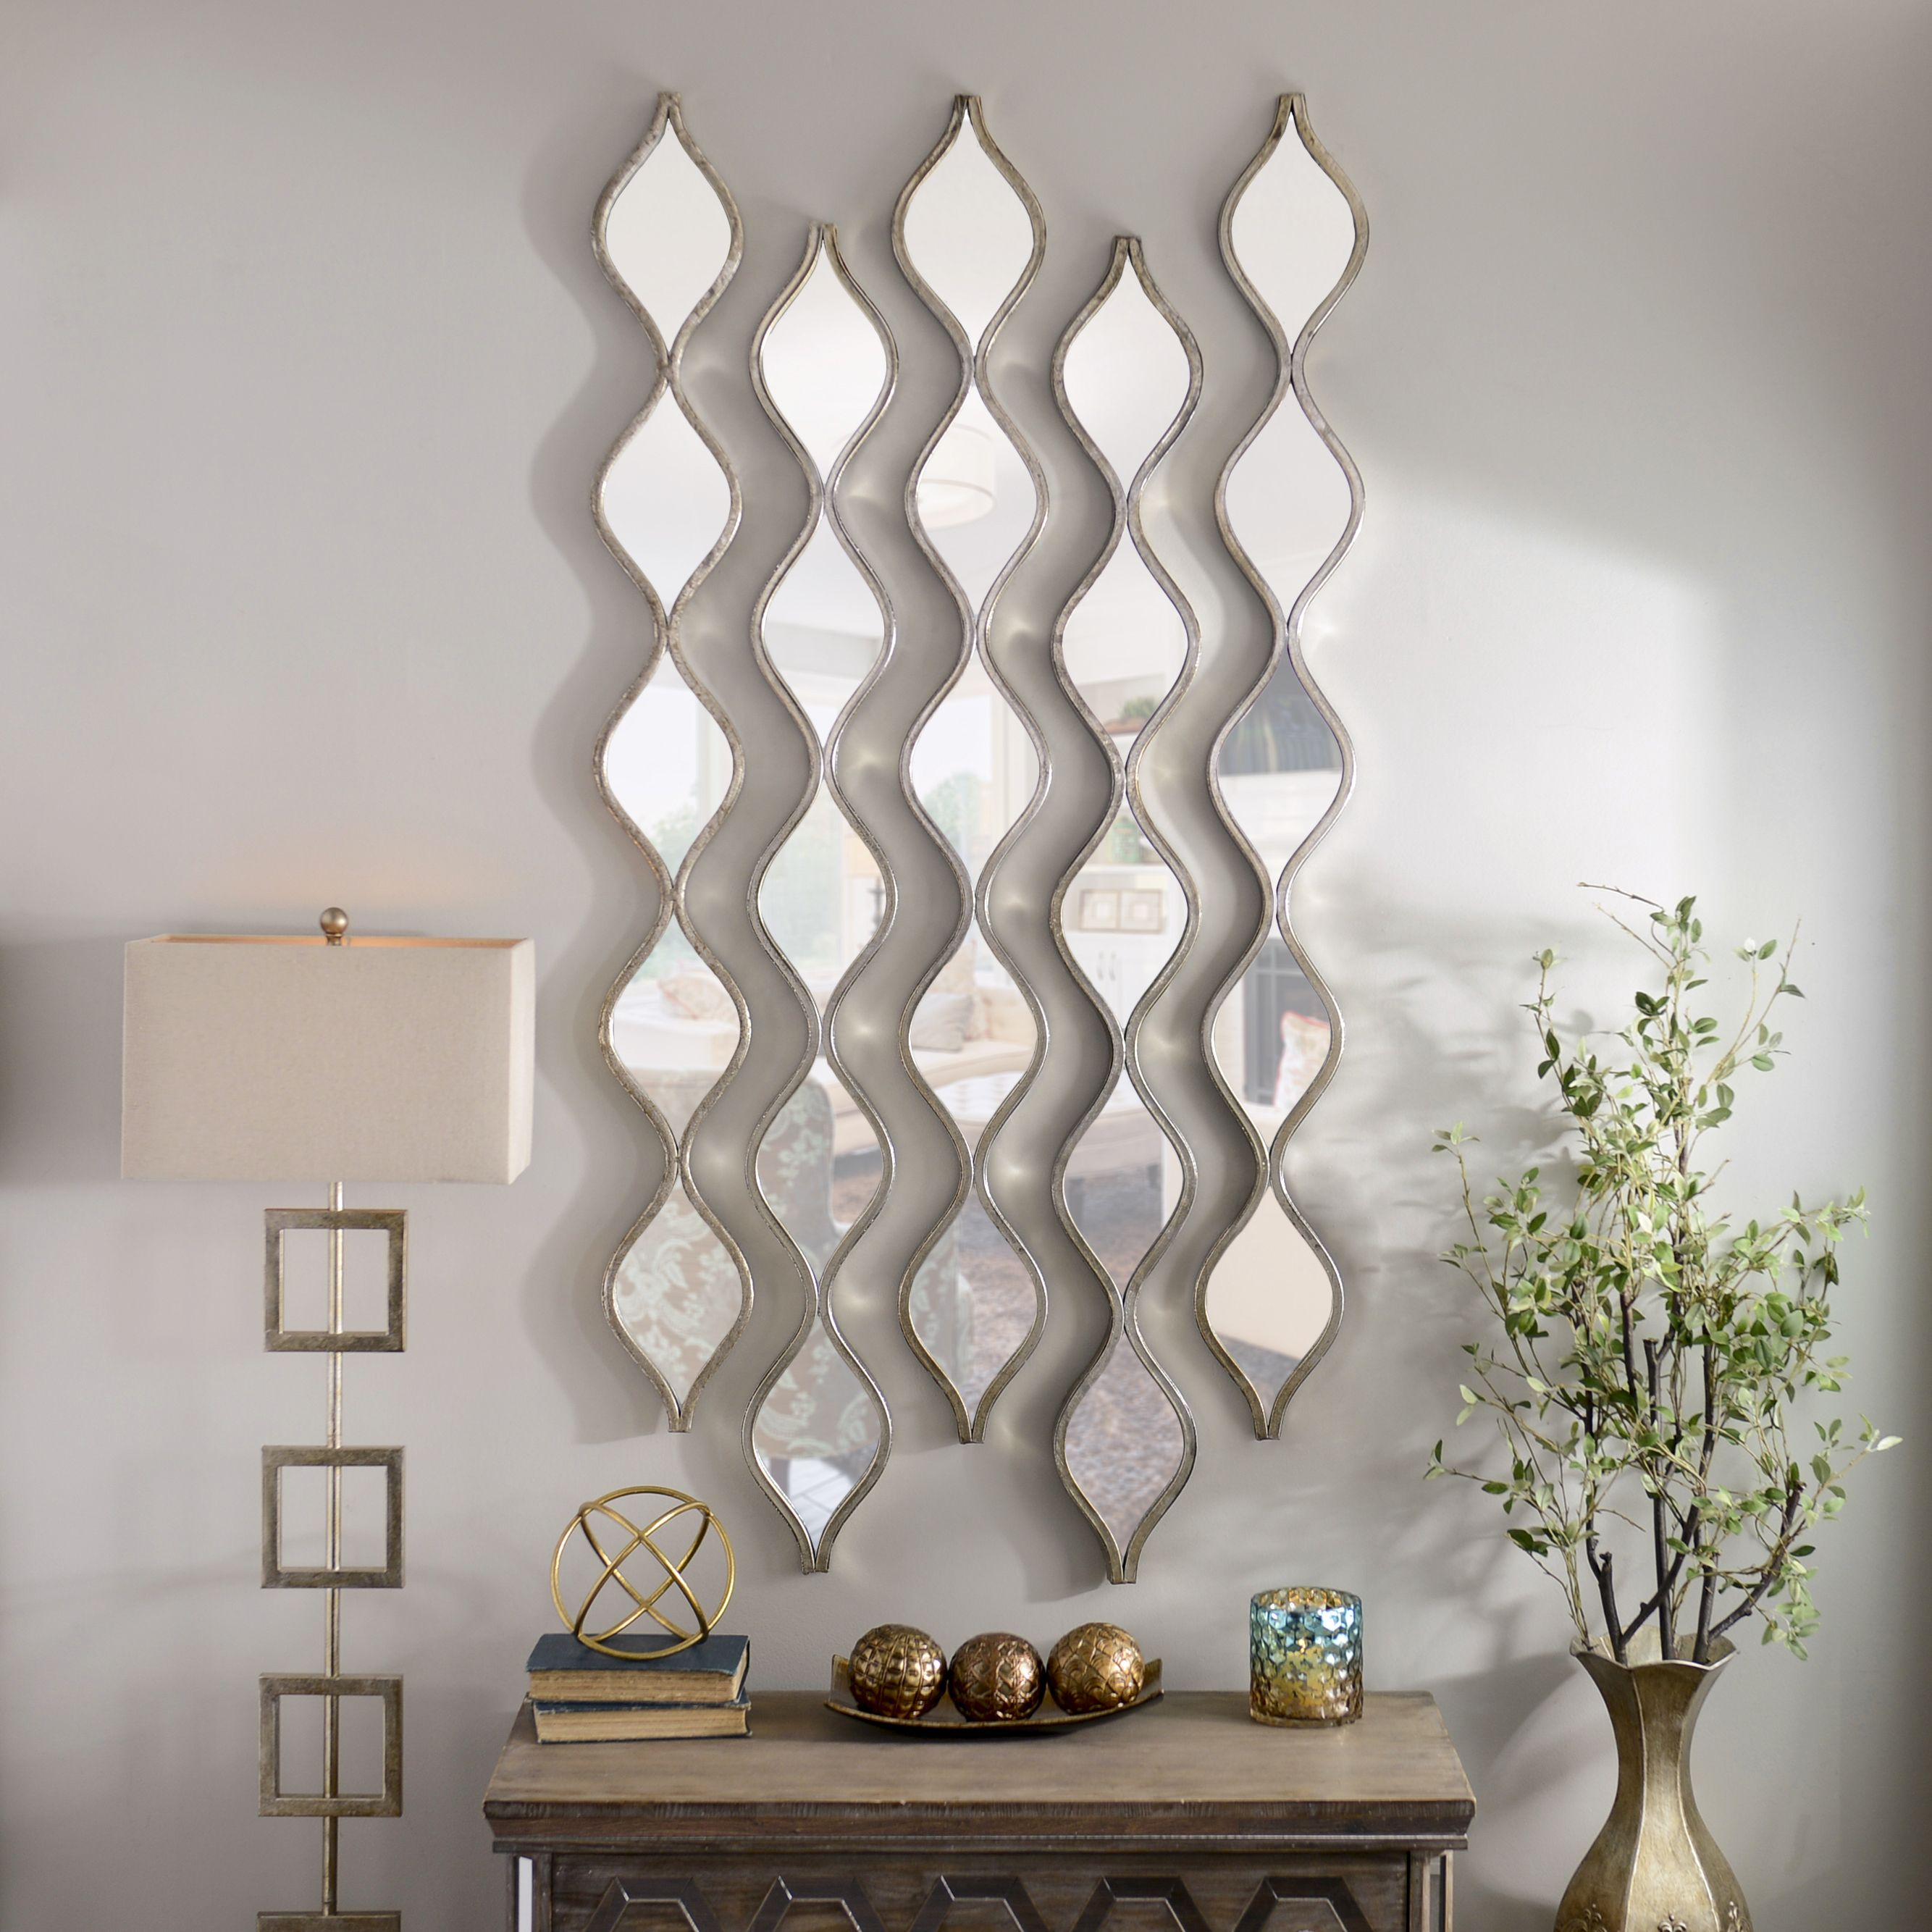 Bring The Perfect Combination Of Modern Chic And Old Hollywood Glamour To Your Home With Kirk Mirror Wall Living Room Mirror Design Wall Wall Decor Living Room